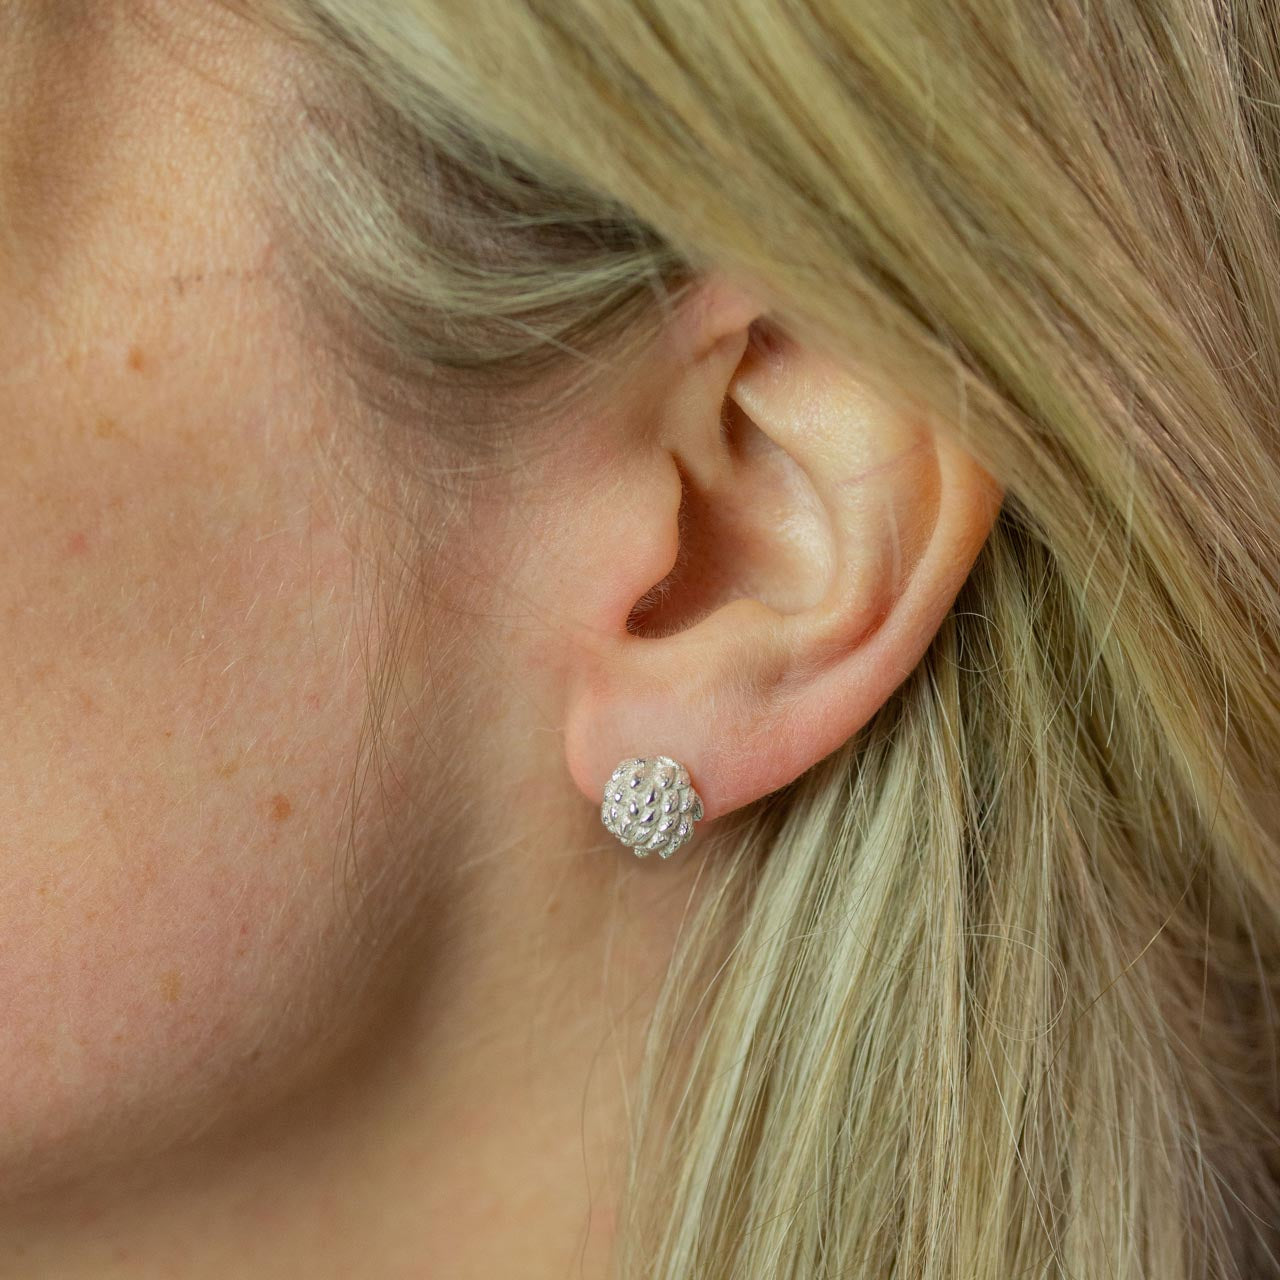 ear modelling silver buttercup stud earrings